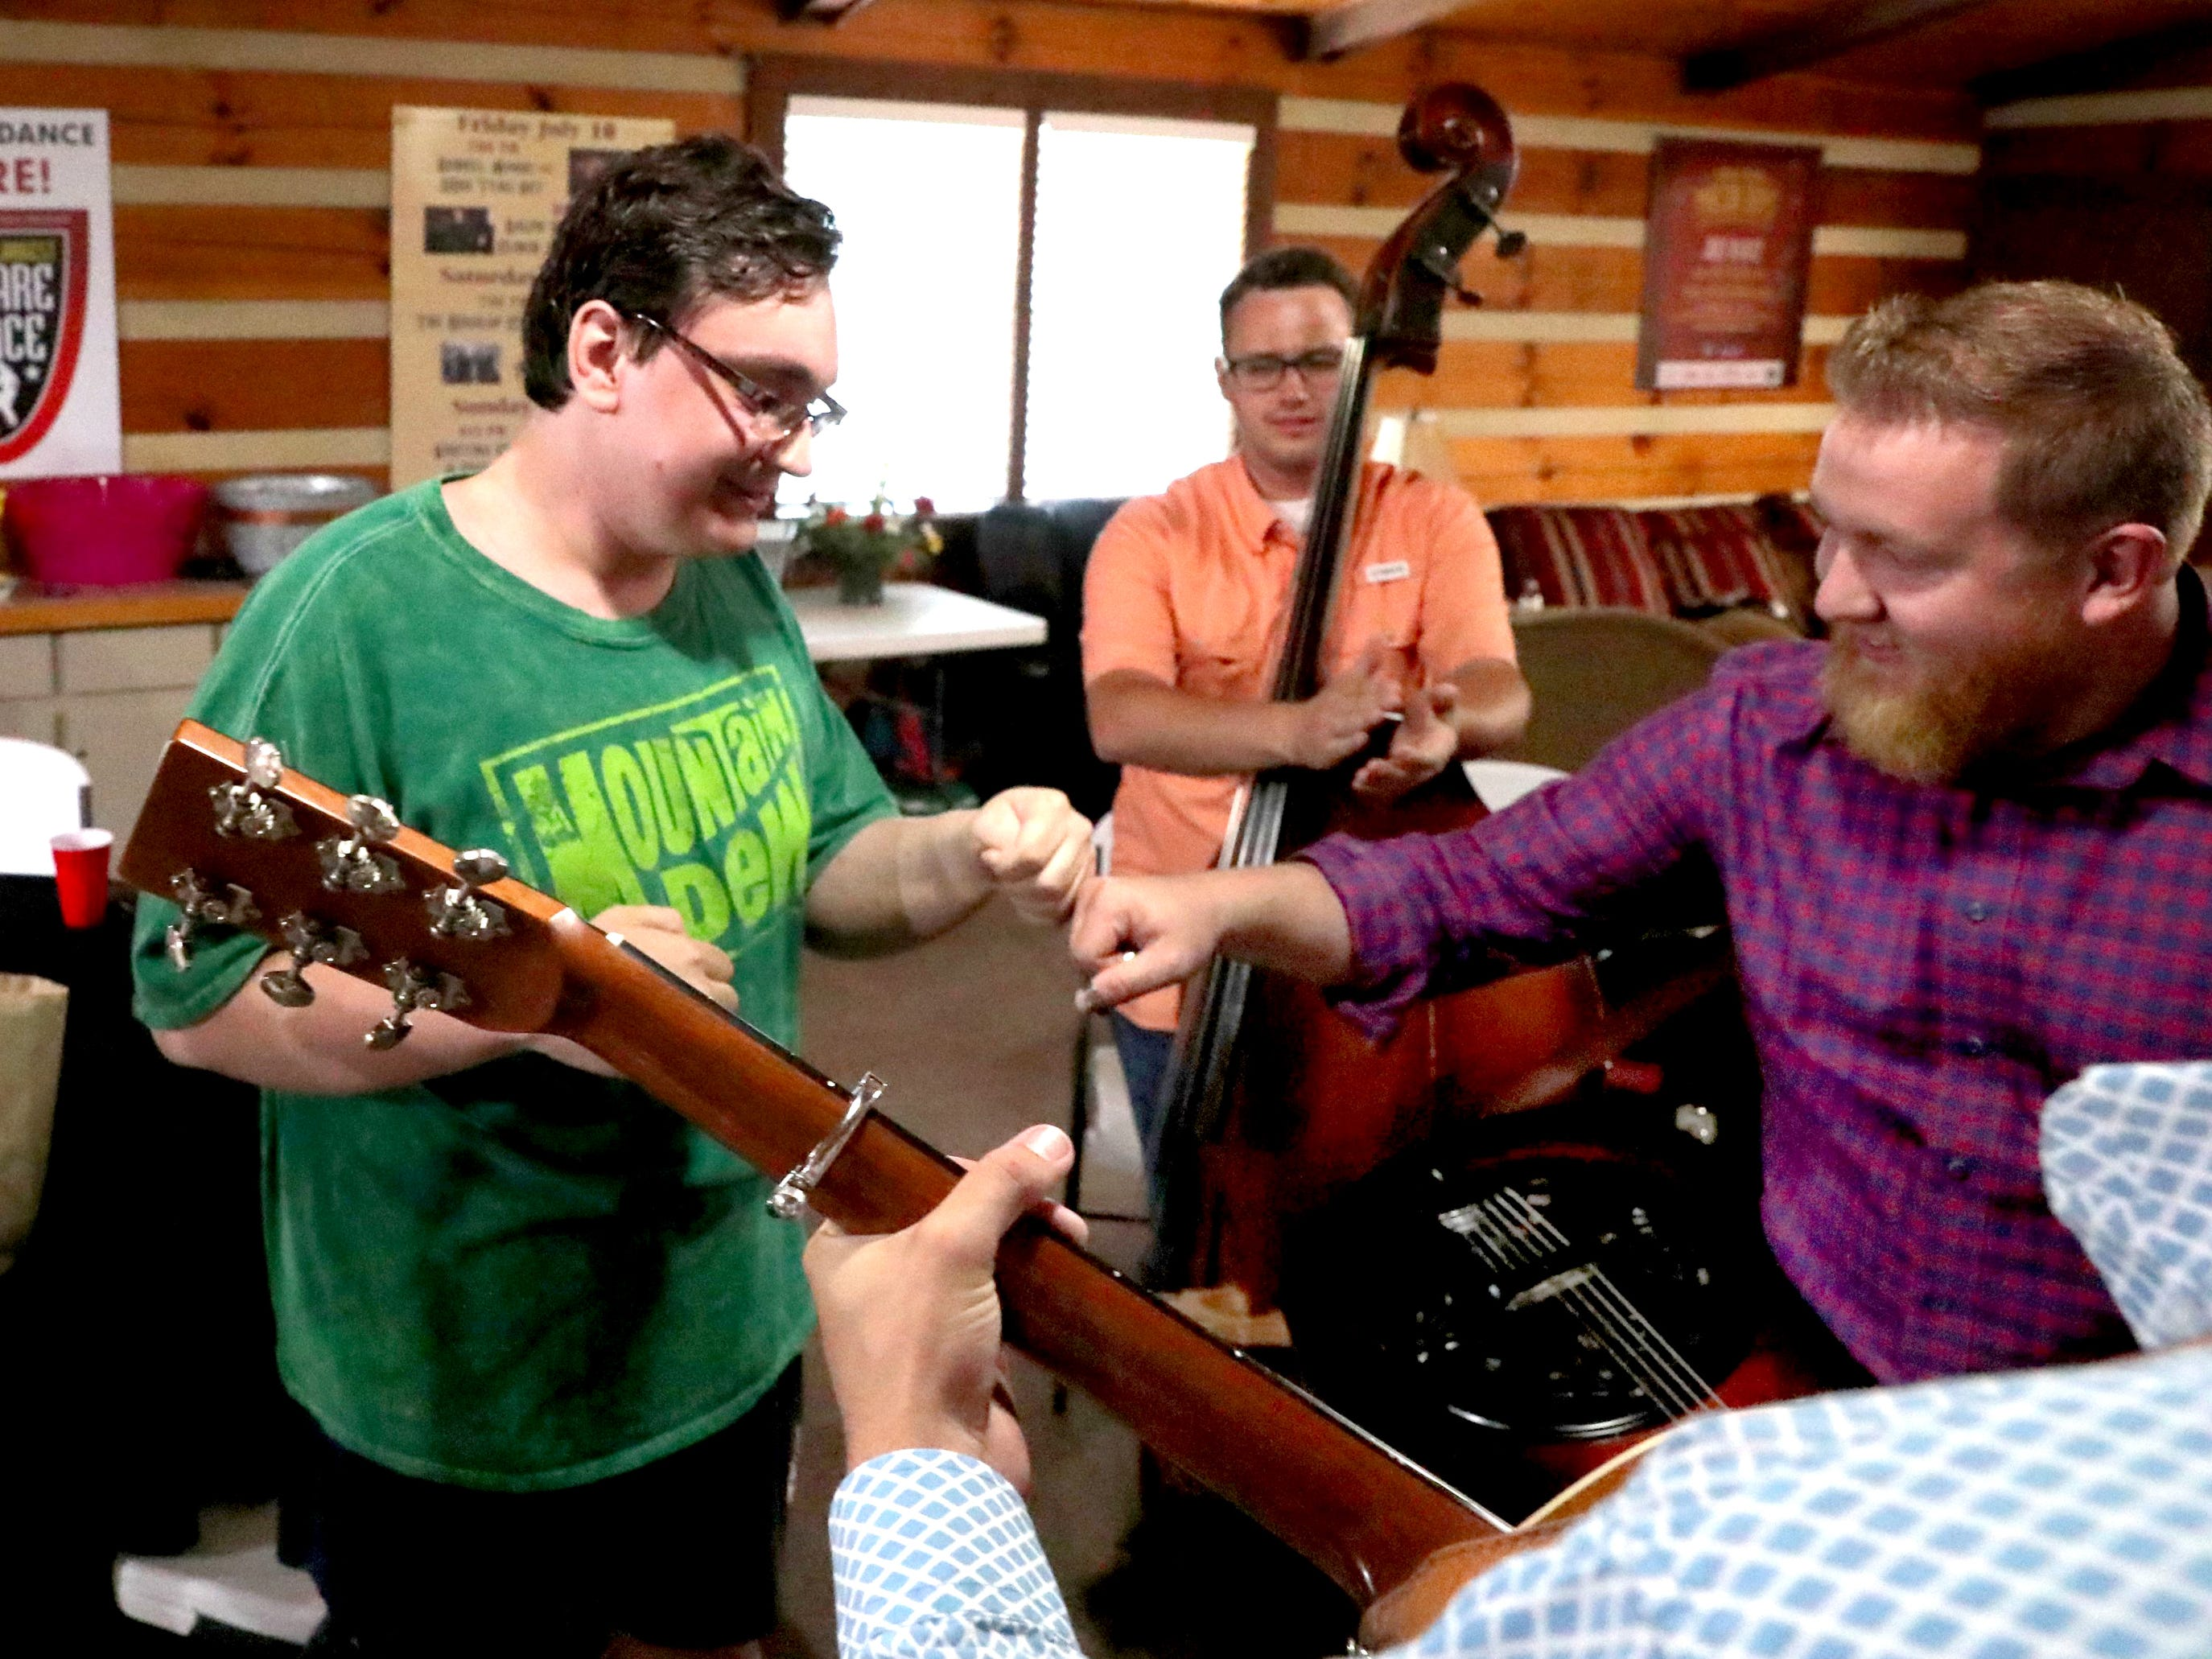 Kyle Nelson, who traveled from Grand Marais, in Northern Minnesota, to see his favorite band Flatt Lonesome, gets a fist bump from Buddy Robertson with Flatt Lonesome as he meets and sings with the band before they perform at the 41st annual Uncle Dave Macon Days Festival on Friday, July 13, 2018.